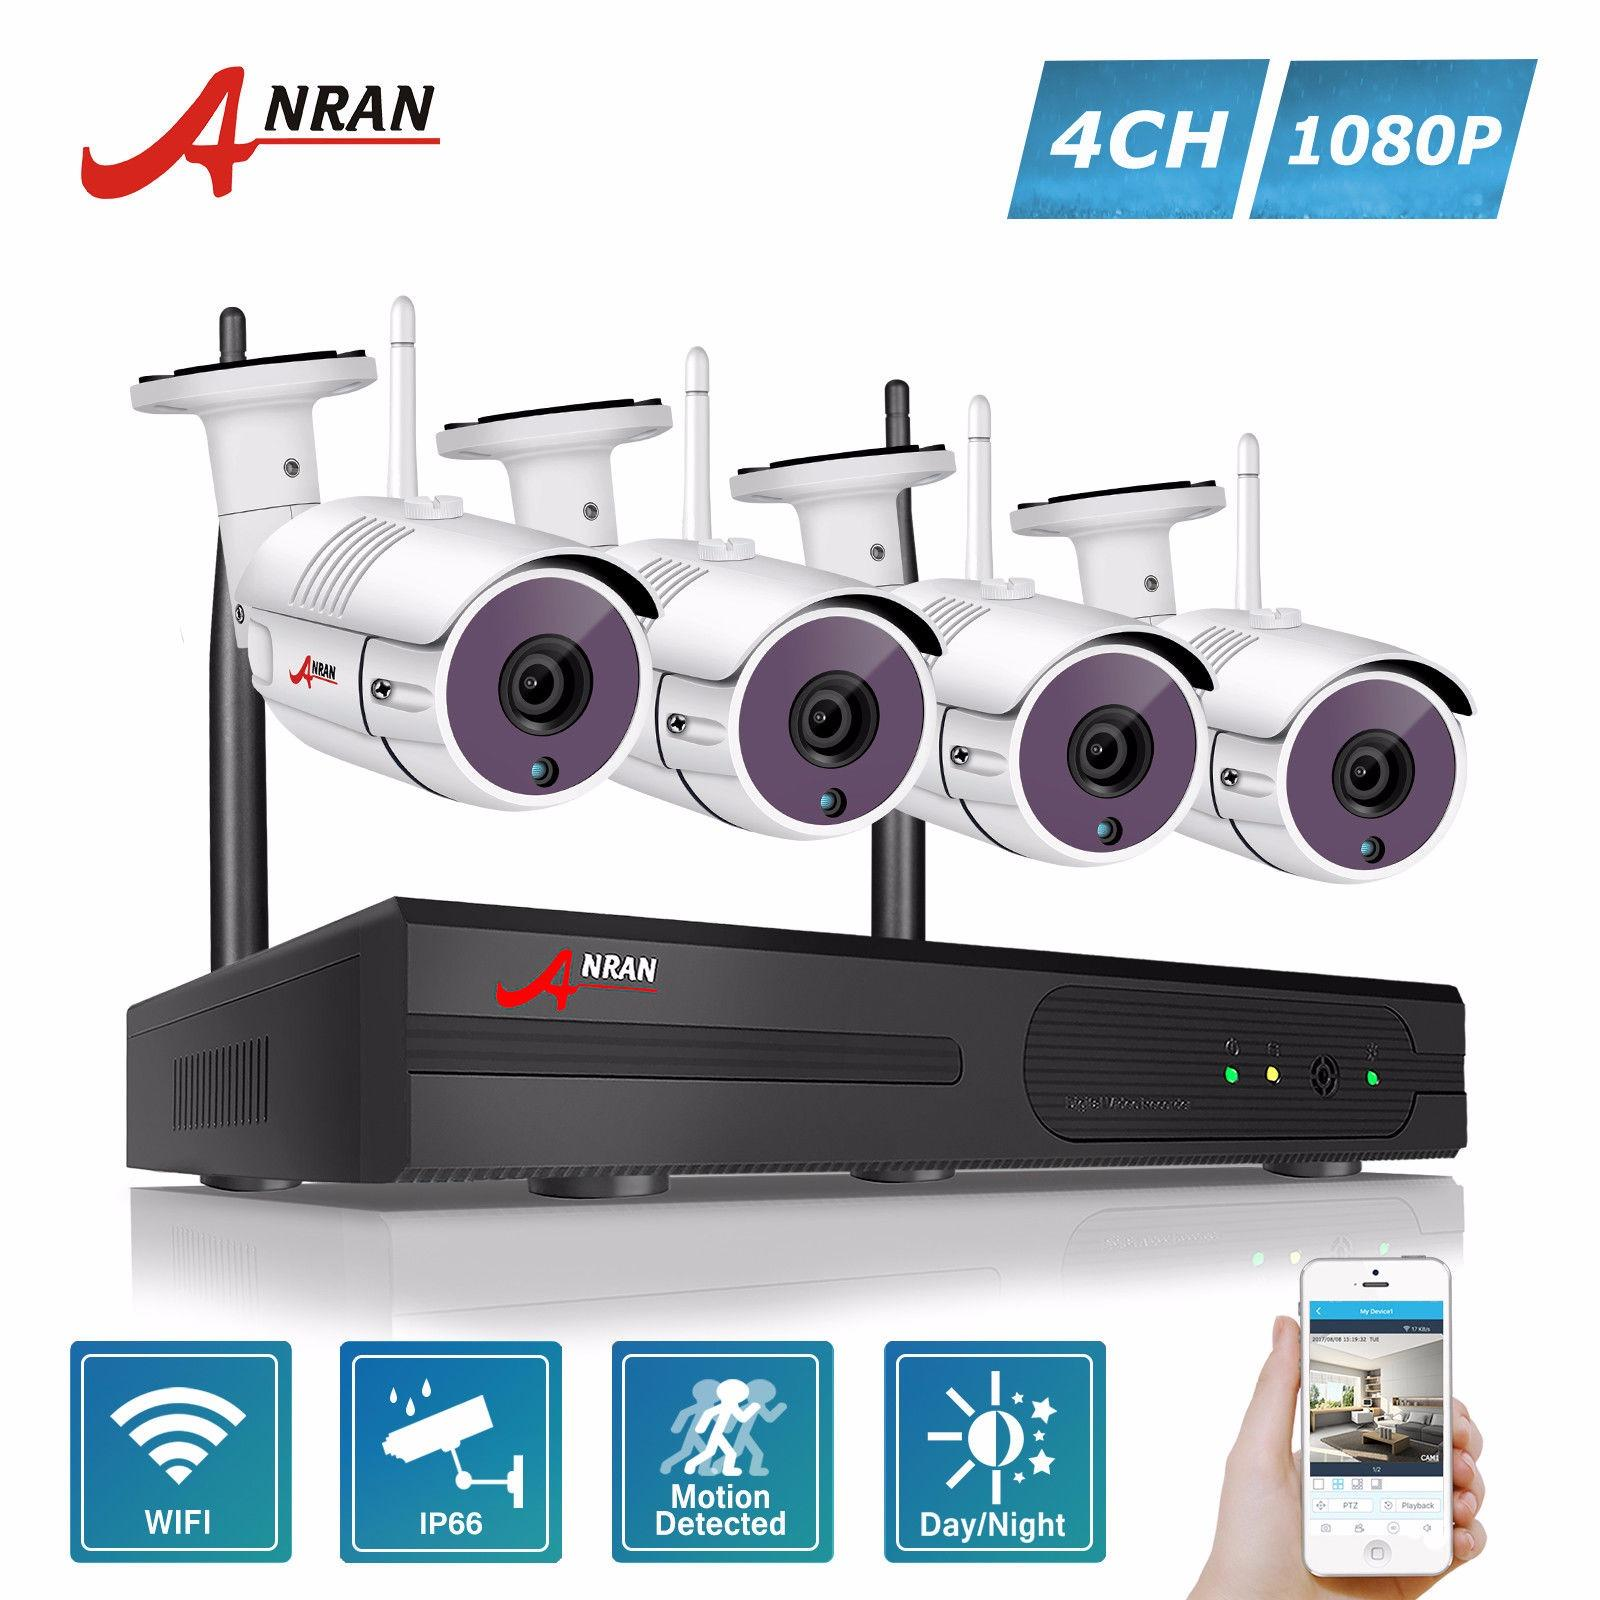 Promo Anran 4Ch Wireless Nvr Security Cctv System P2P 1080P Hd Outdoor Vandalproof Wfi Ip Camera